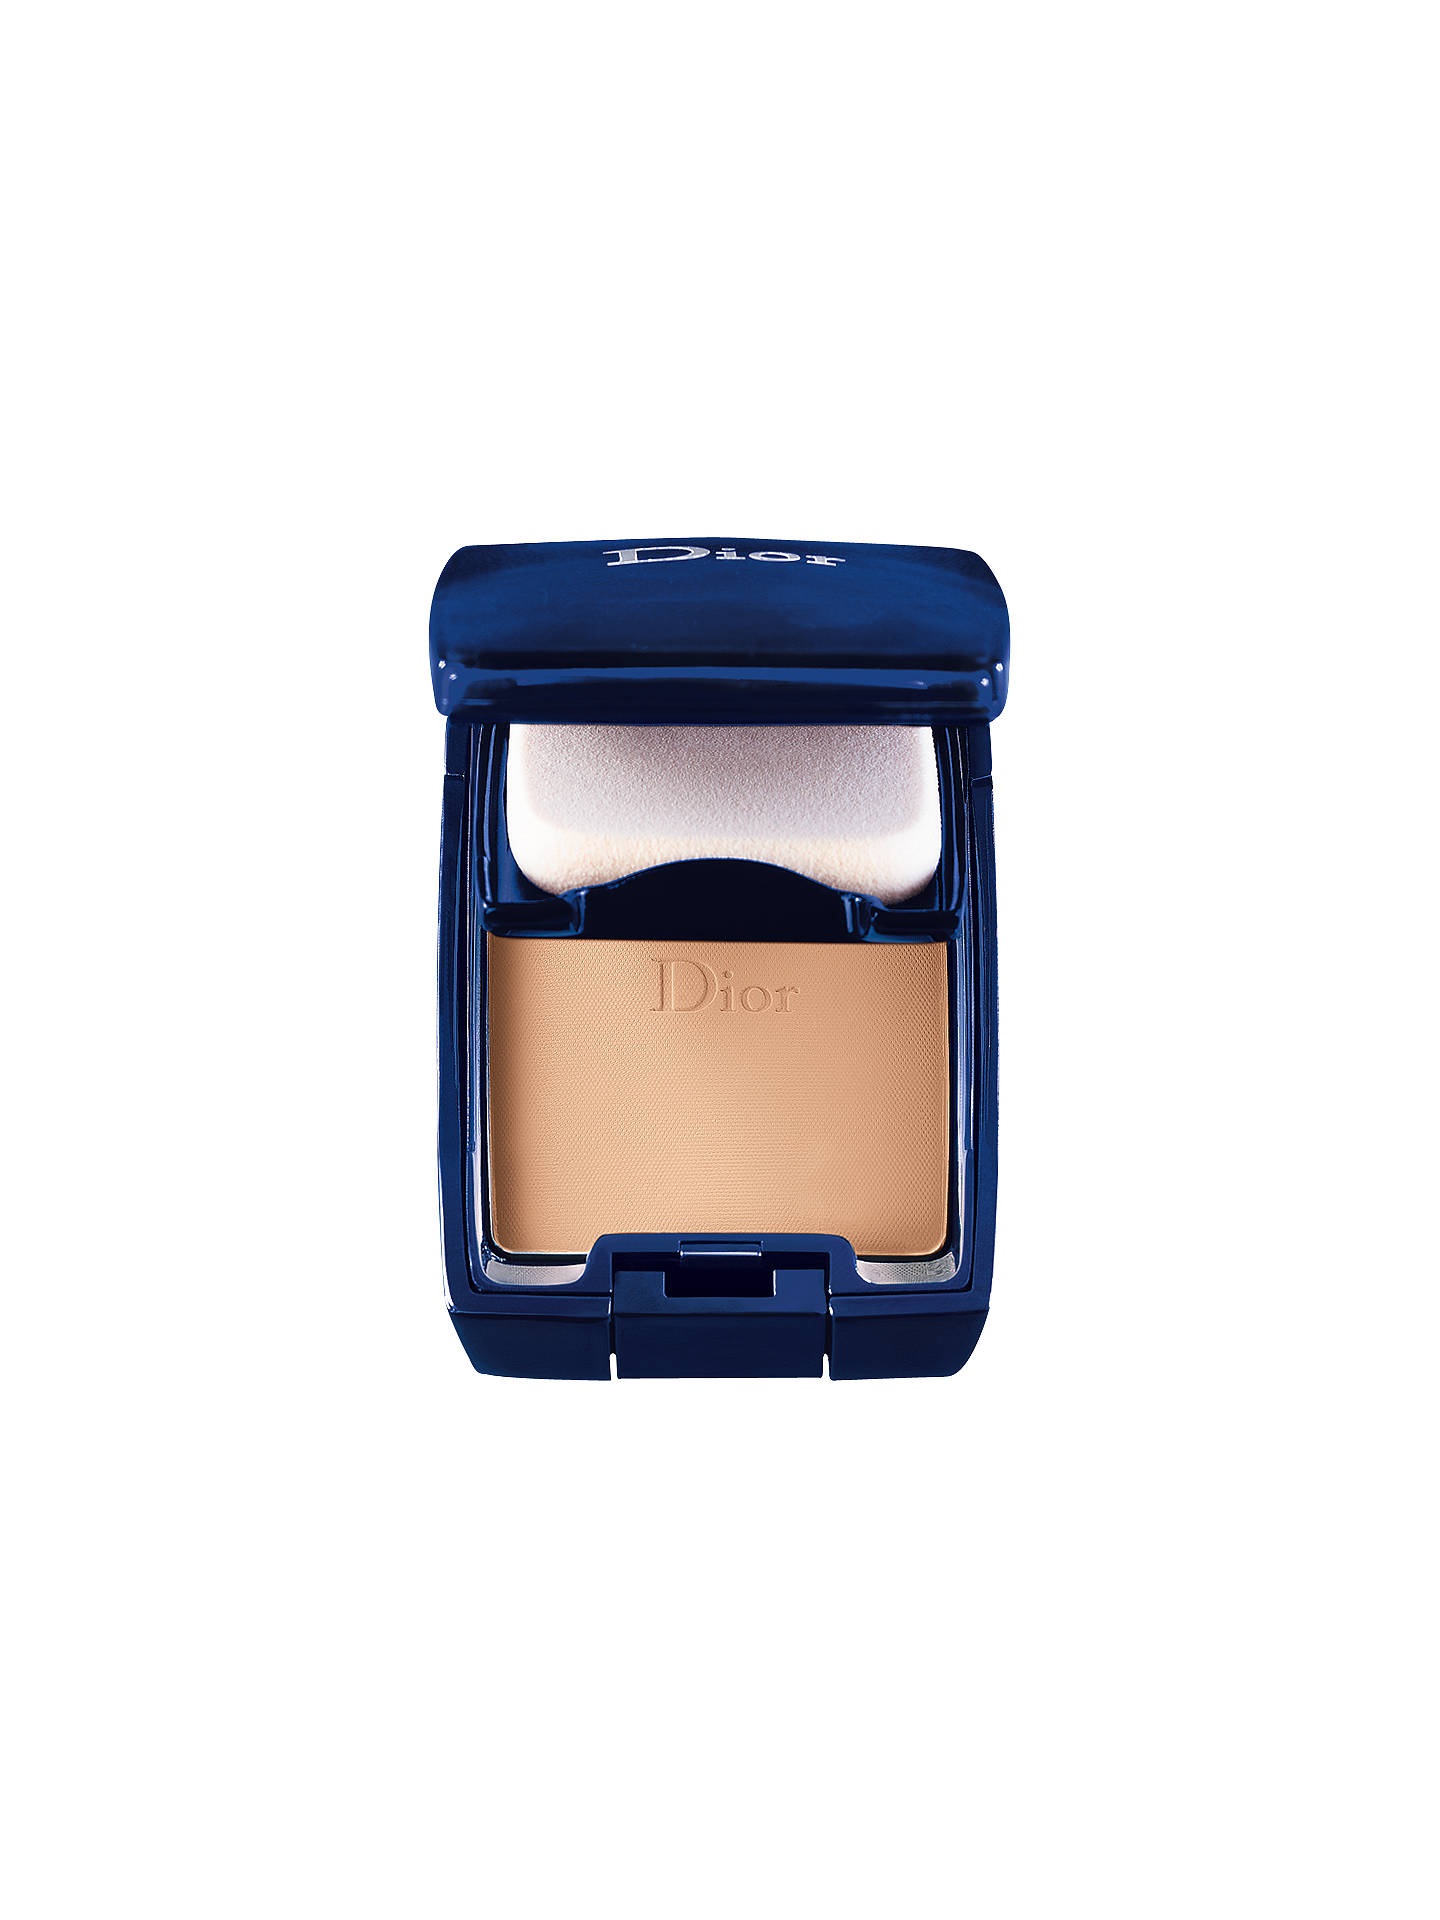 Dior Diorskin Forever Compact Refill At John Lewis Partners